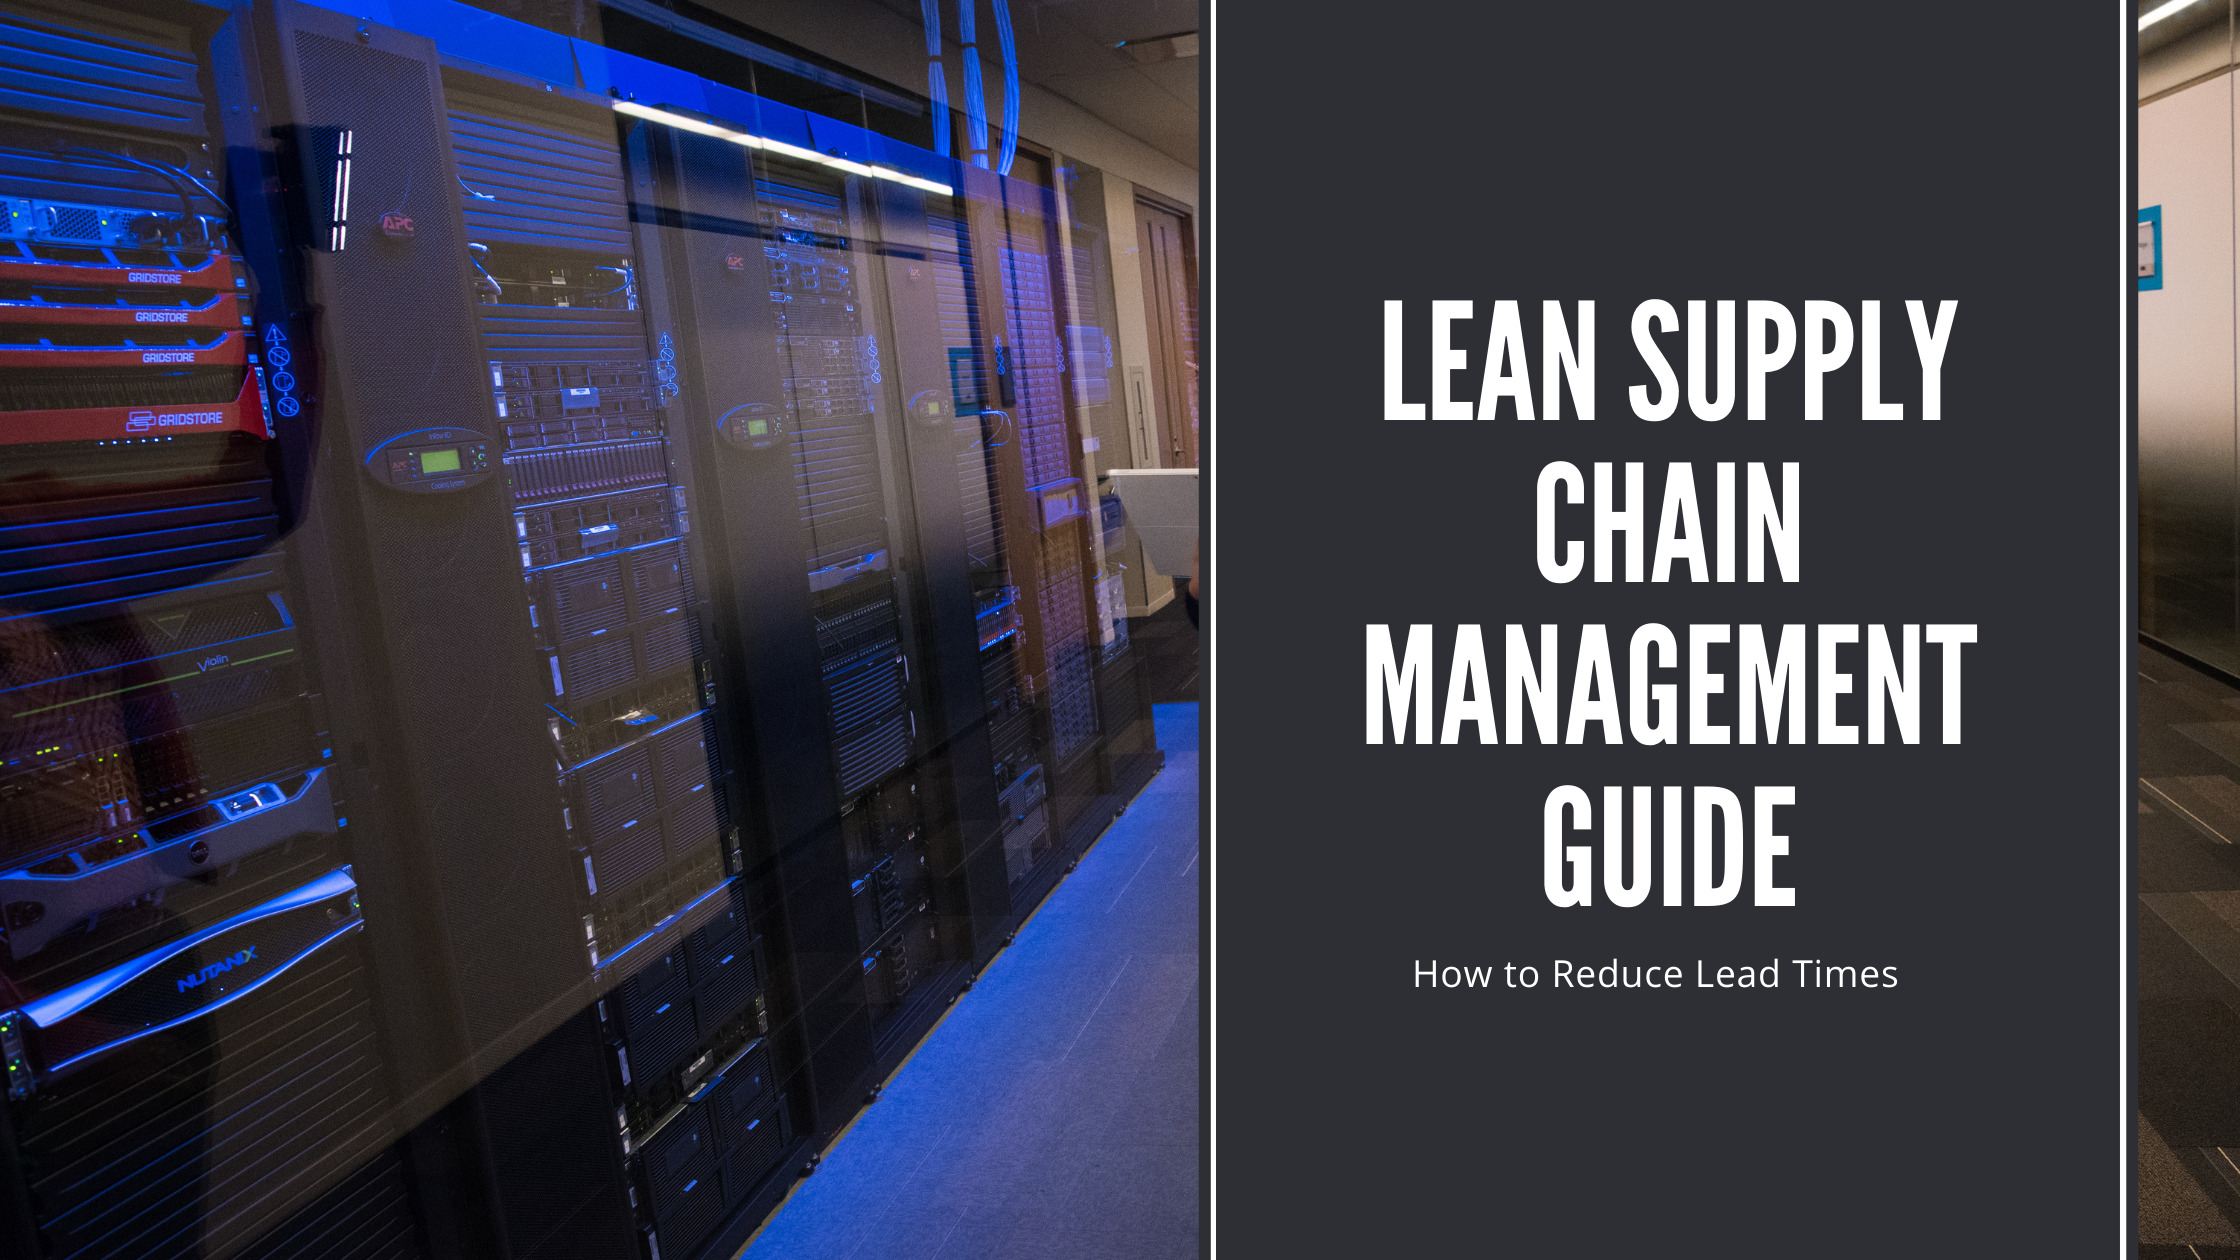 lean supply chain management guide